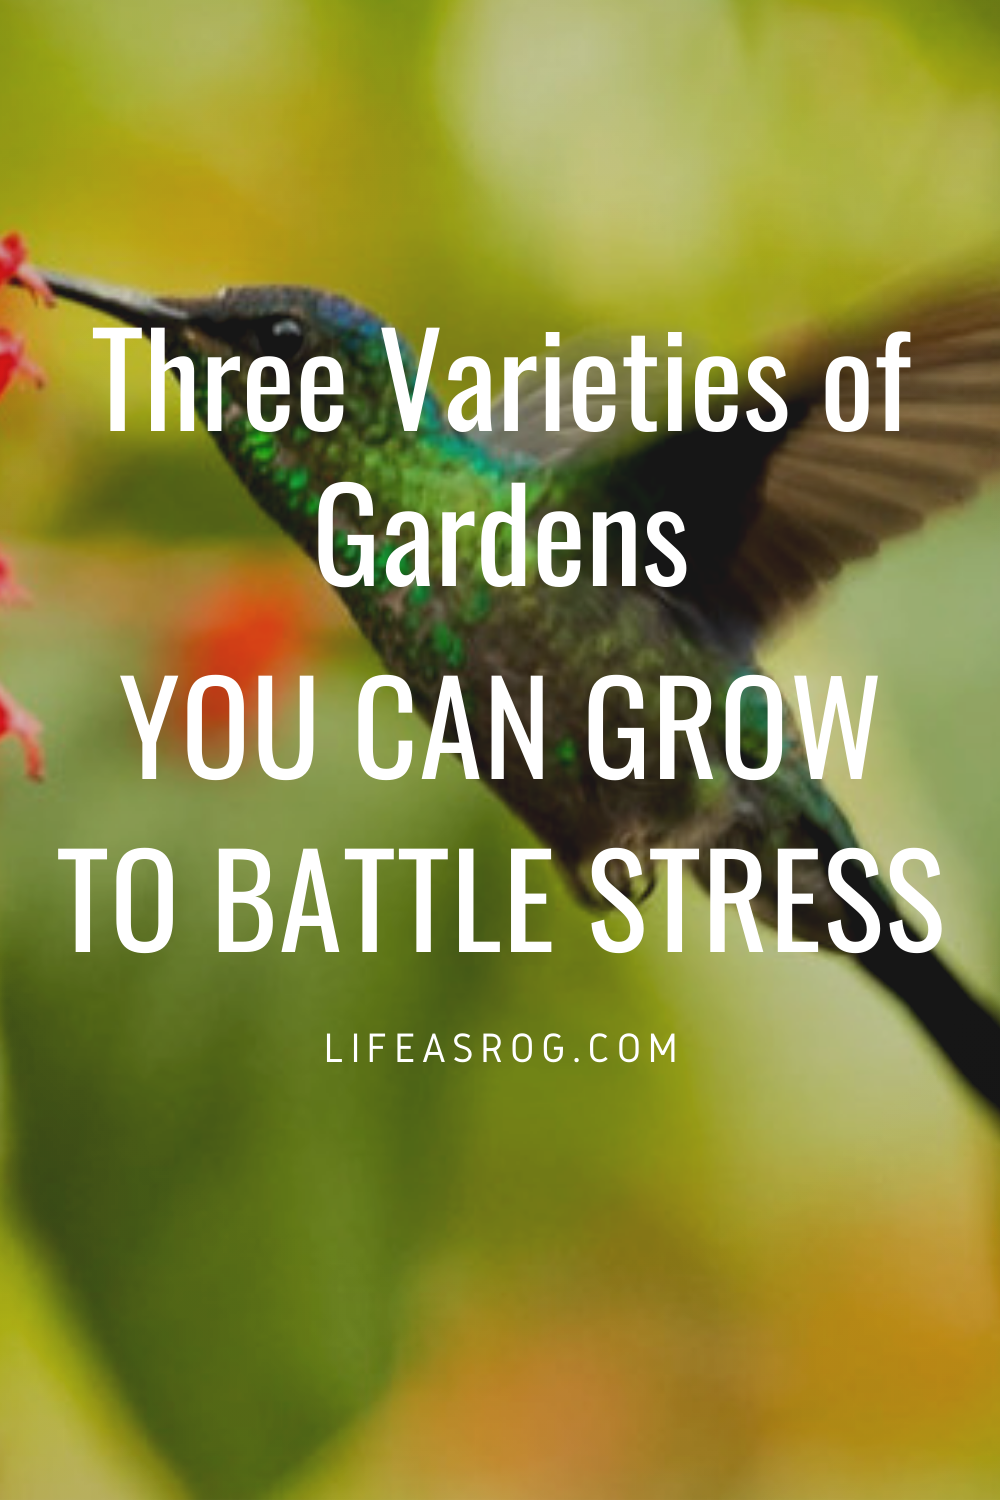 Three Varieties of Gardens You Can Grow to Battle Stress